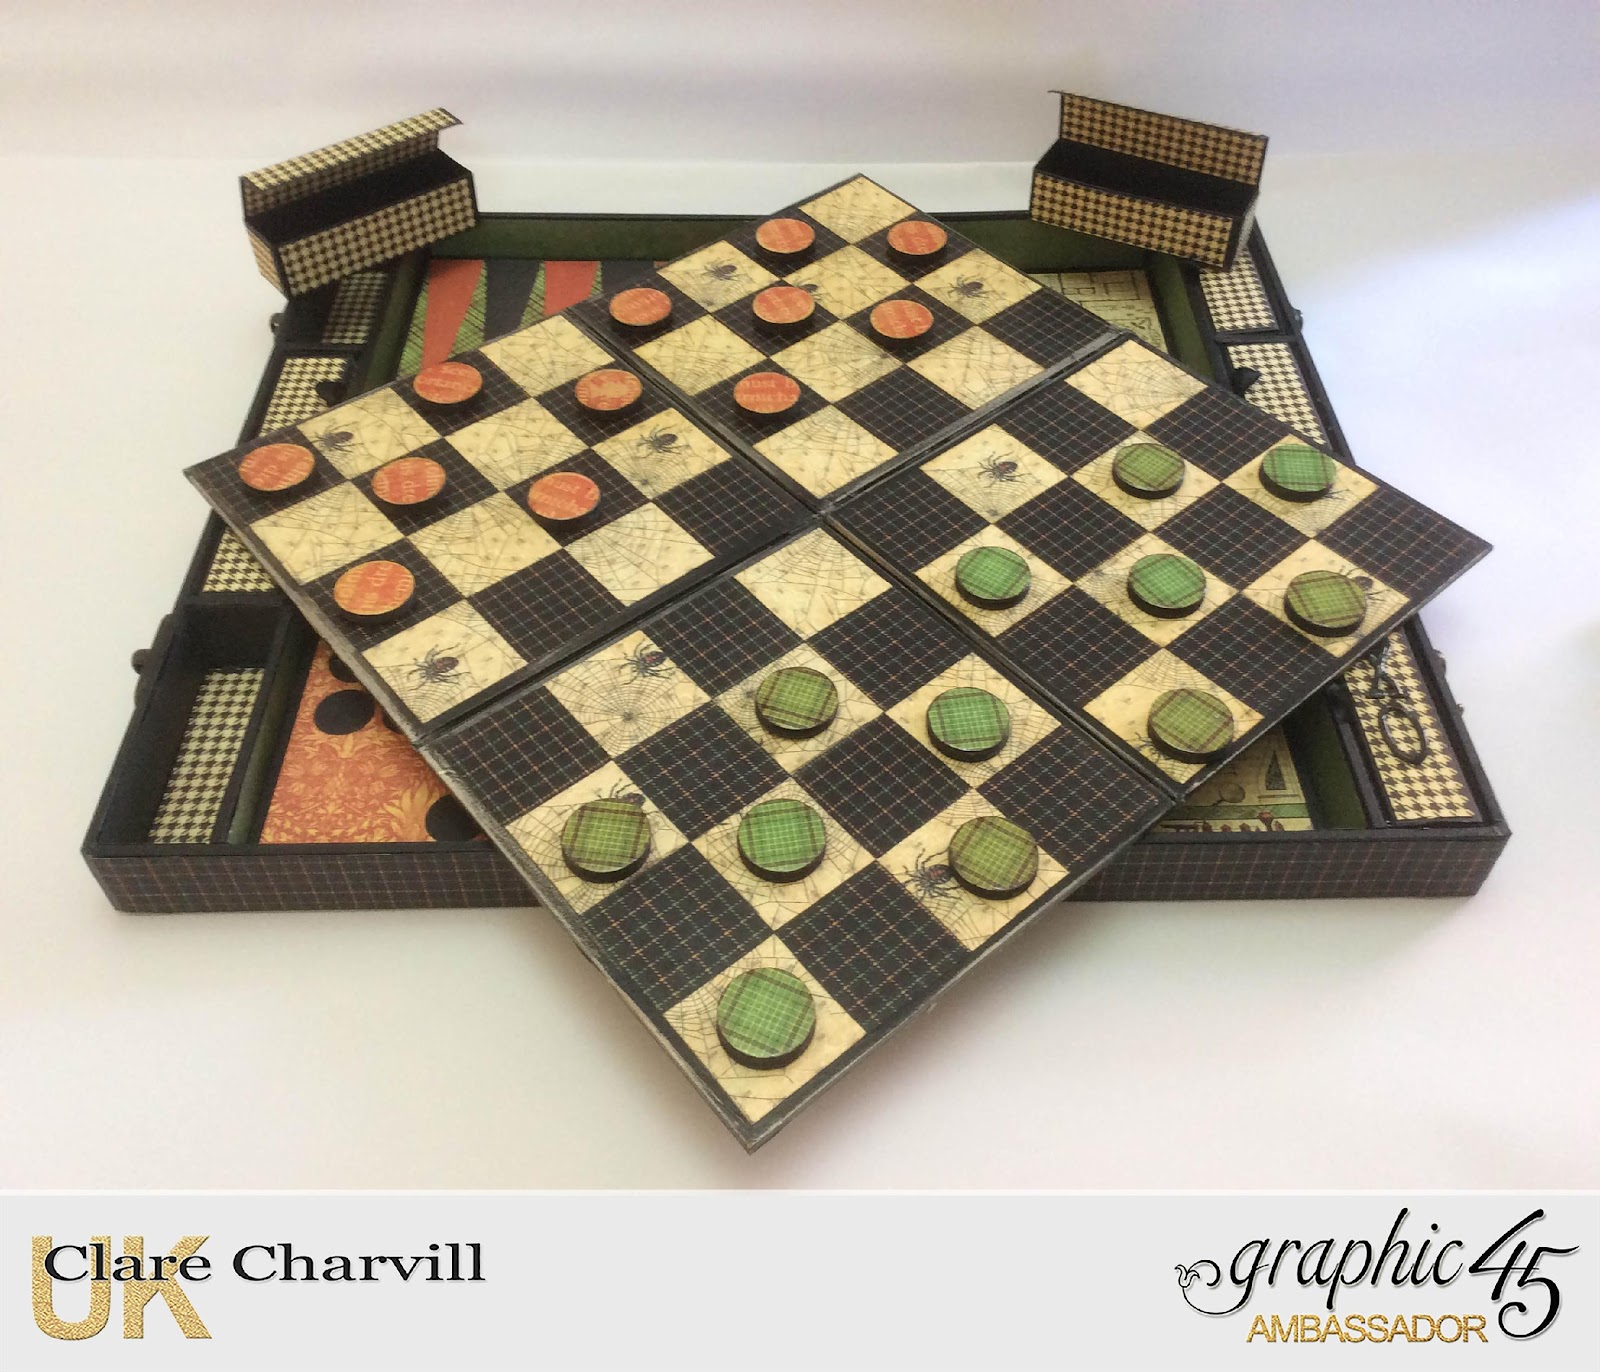 /Users/clare/Pictures/Photos Library.photoslibrary/Masters/2017/07/10/20170710-063017/MDCOG Draughts Board Clare Charvill Graphic 45.jpg